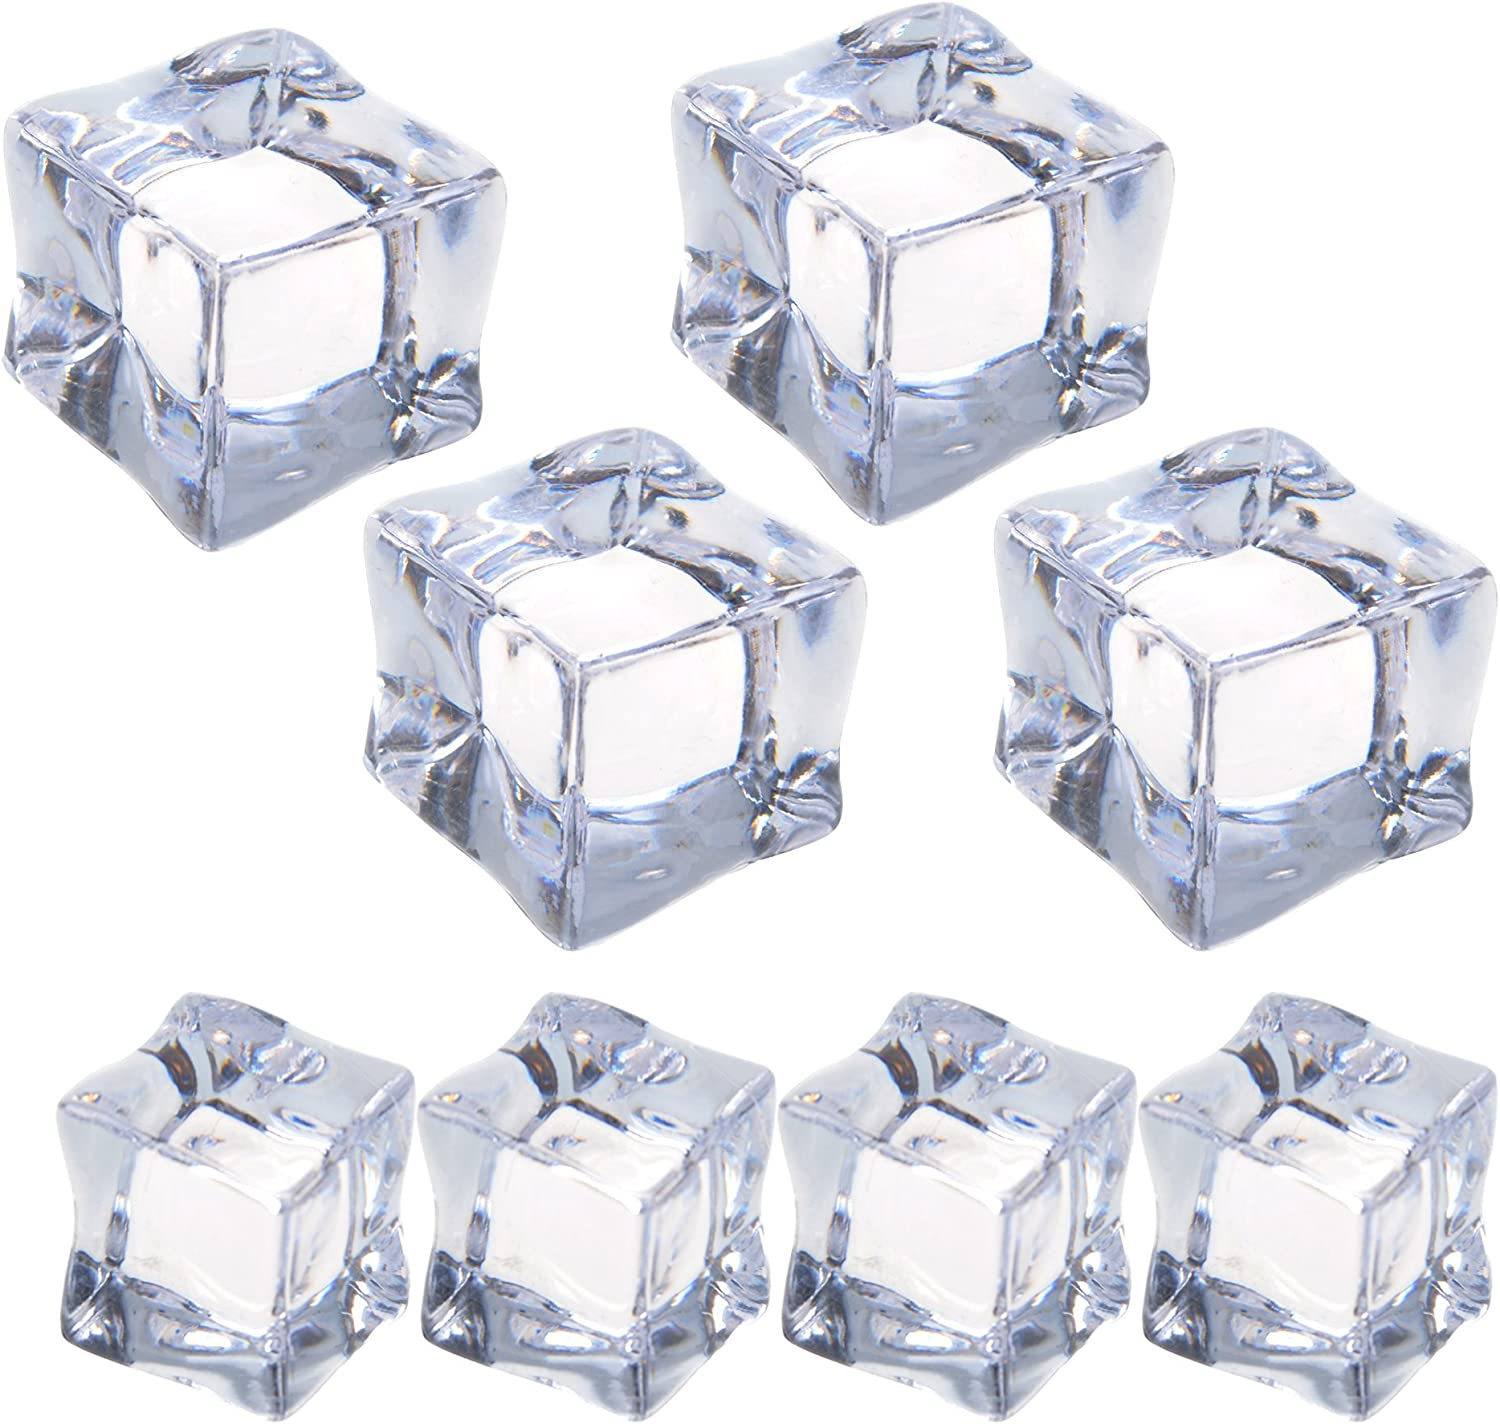 Cosmos 8 Pcs Fake Clear Acrylic Plastic Ice Cubes Square Shape for Display & Photography